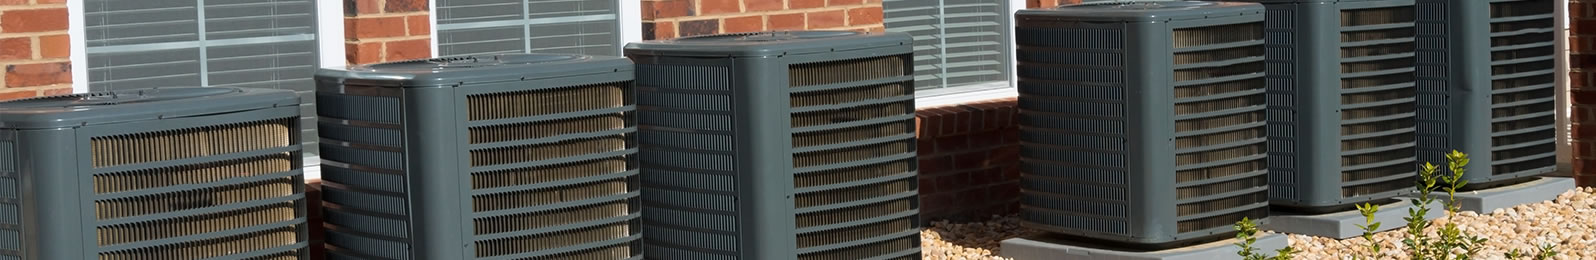 Warranty Scheme Ciat Air Conditioning And Heating